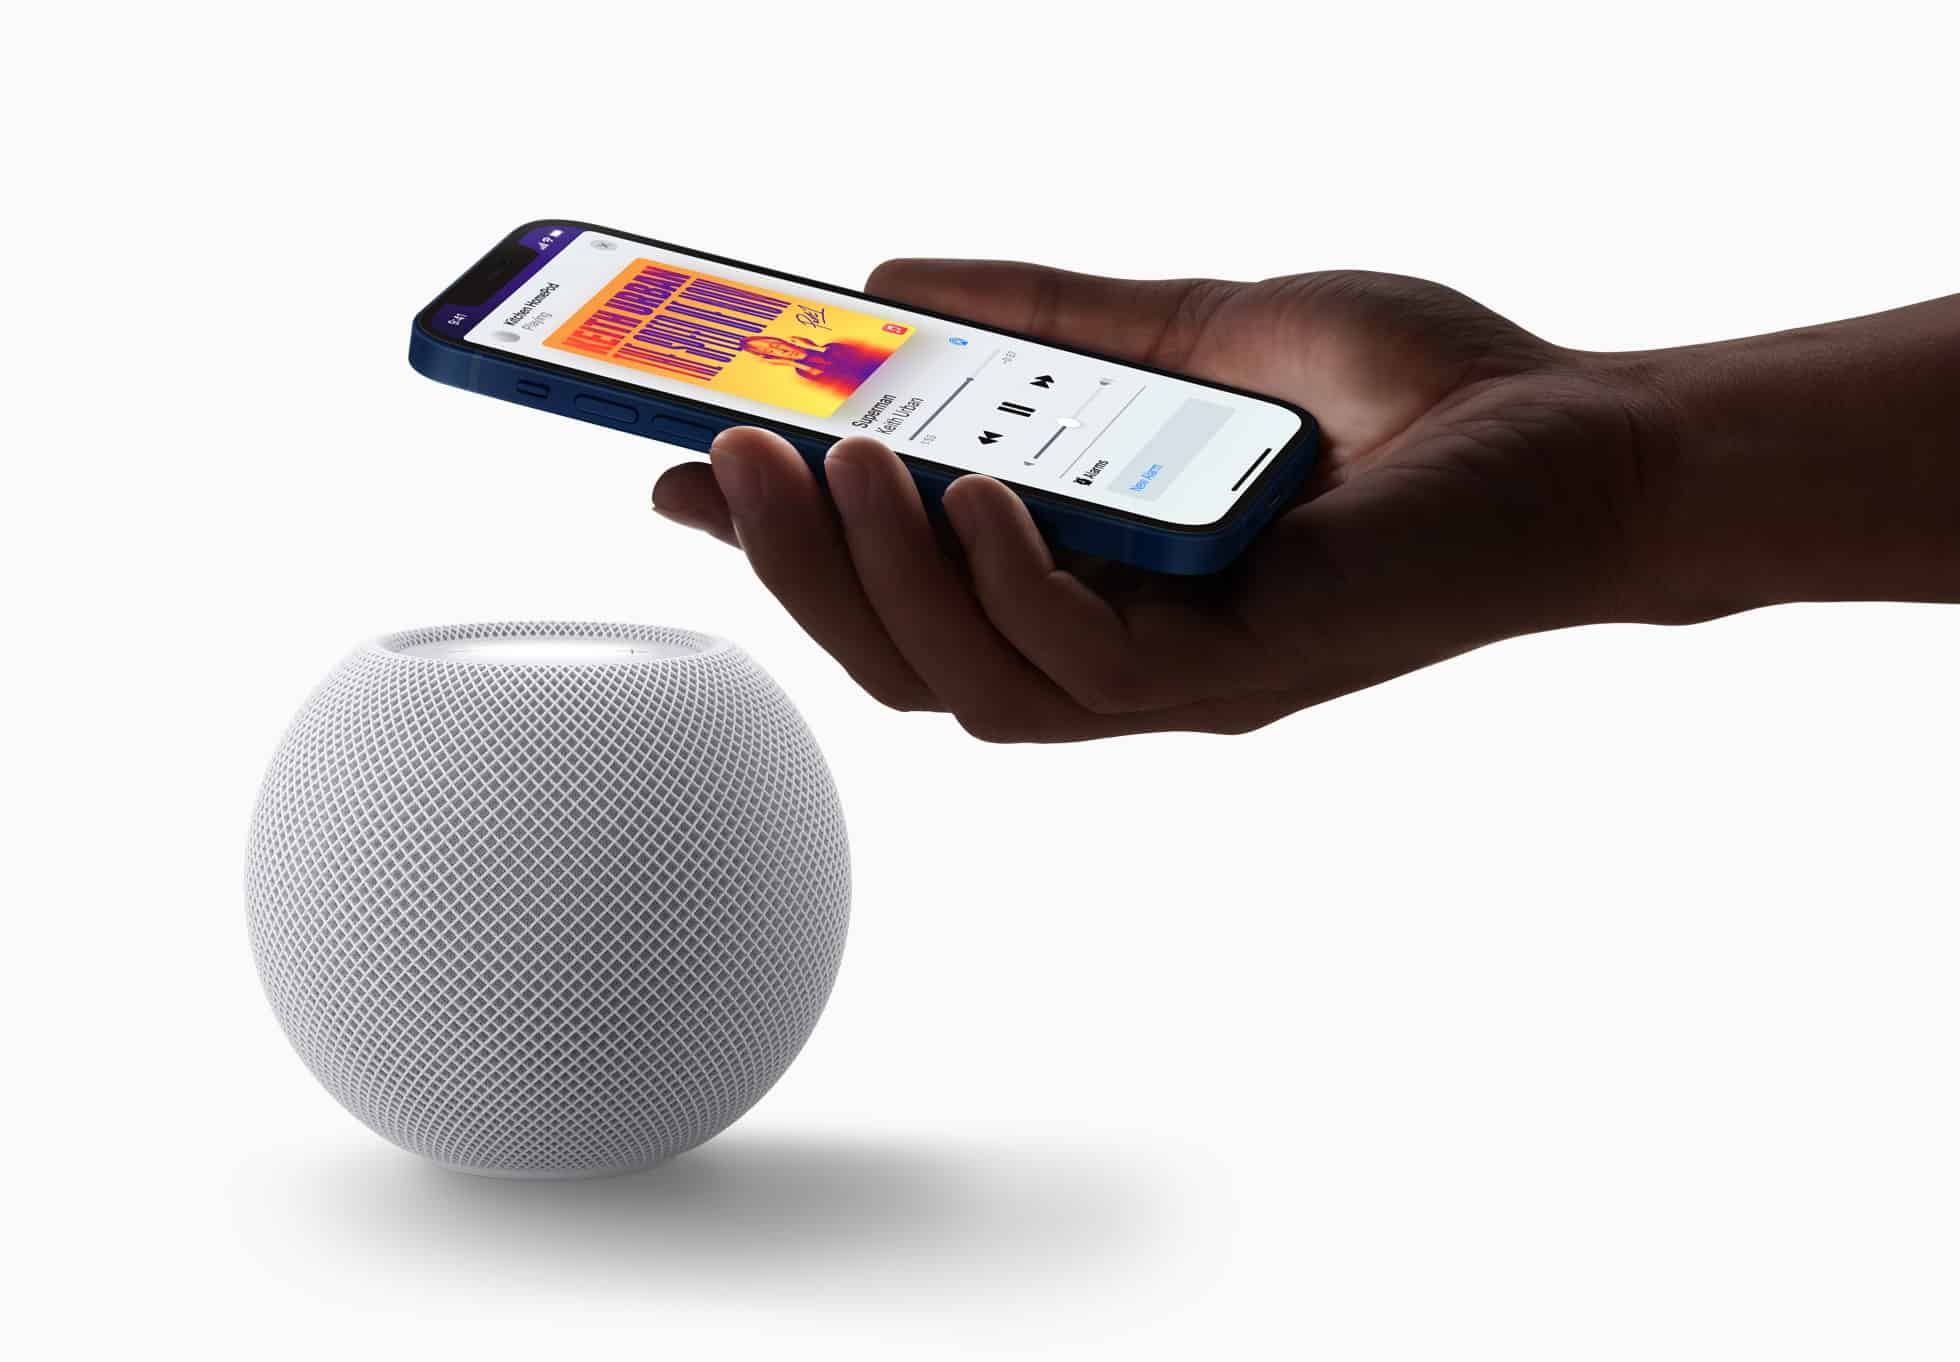 Reset HomePod and HomePod Mini